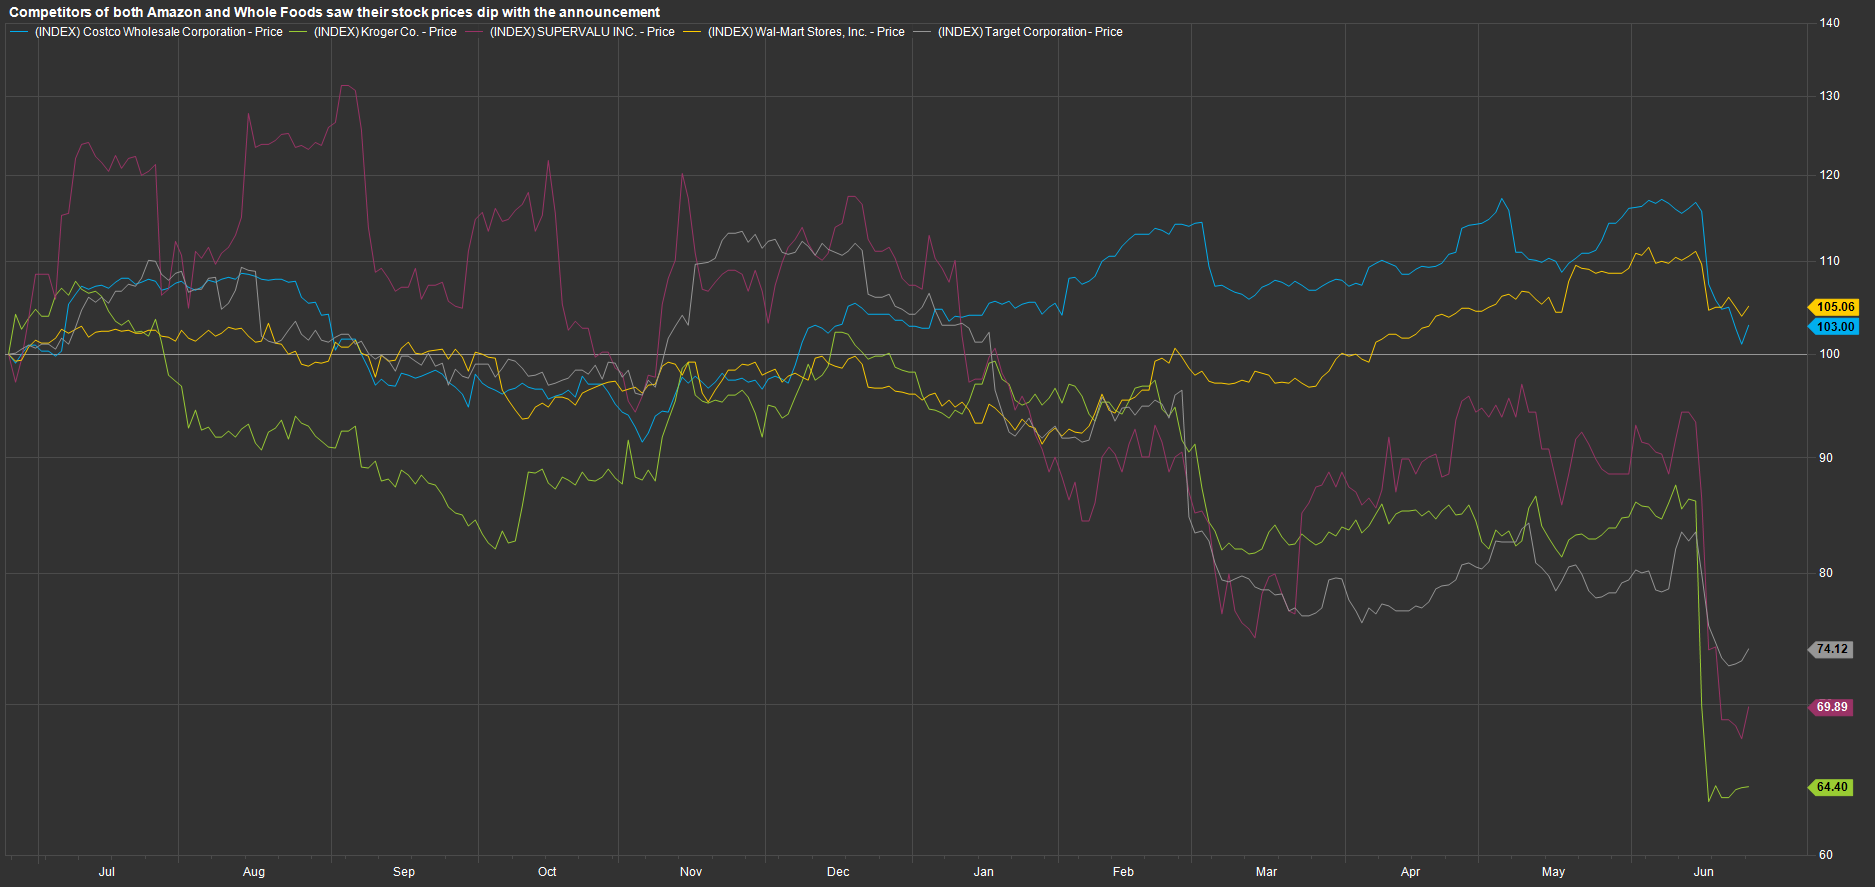 WFM competitor prices dip after announcement.png